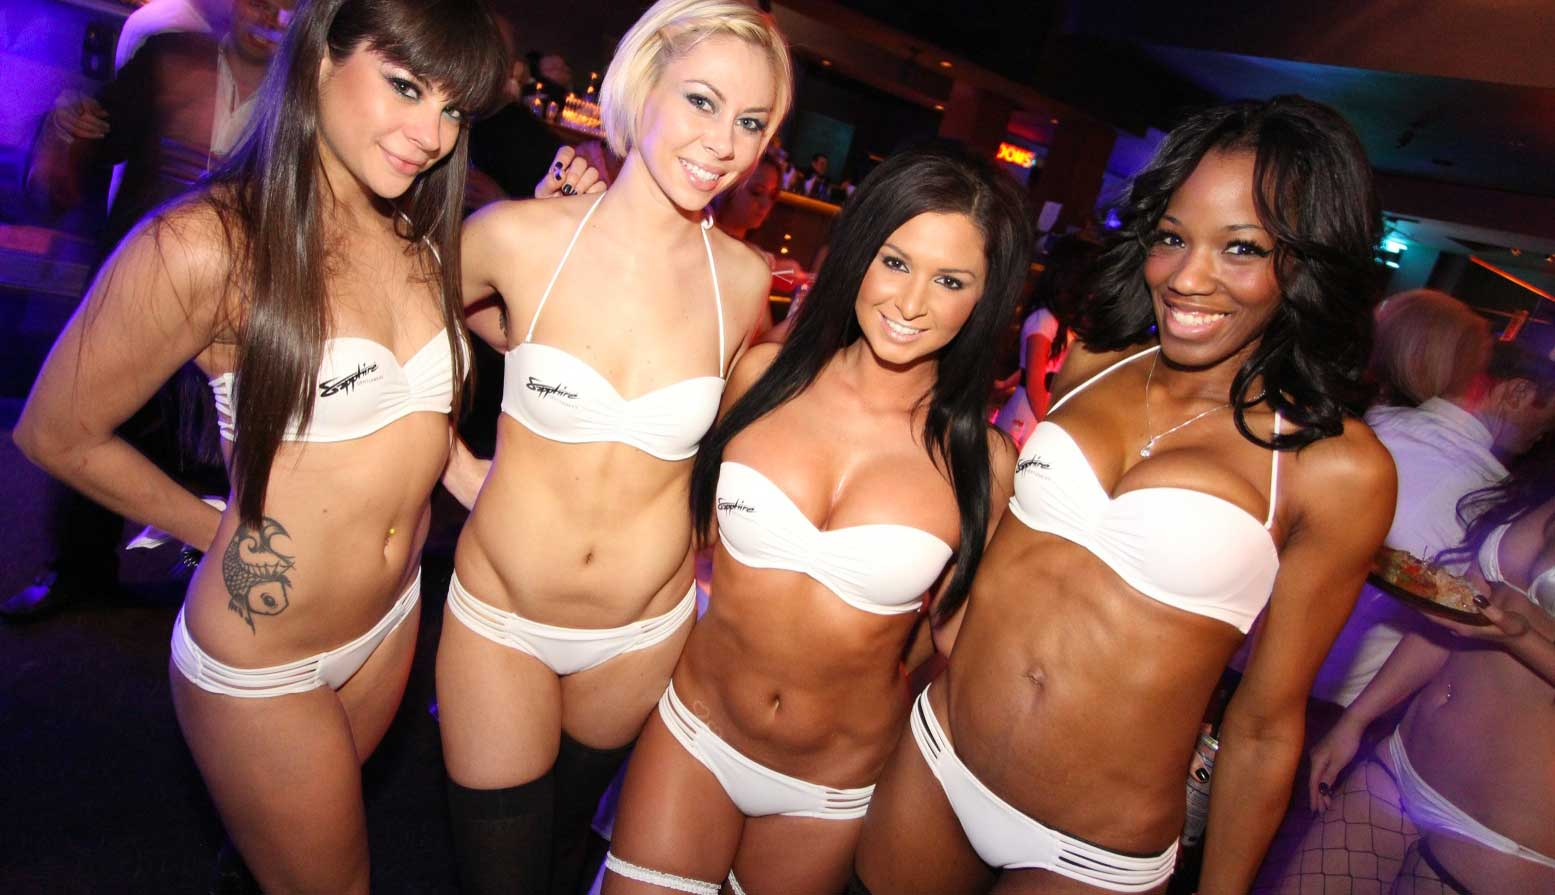 Top 5 Strip Clubs In Las Vegas - Las Vegas - The Poker-9134